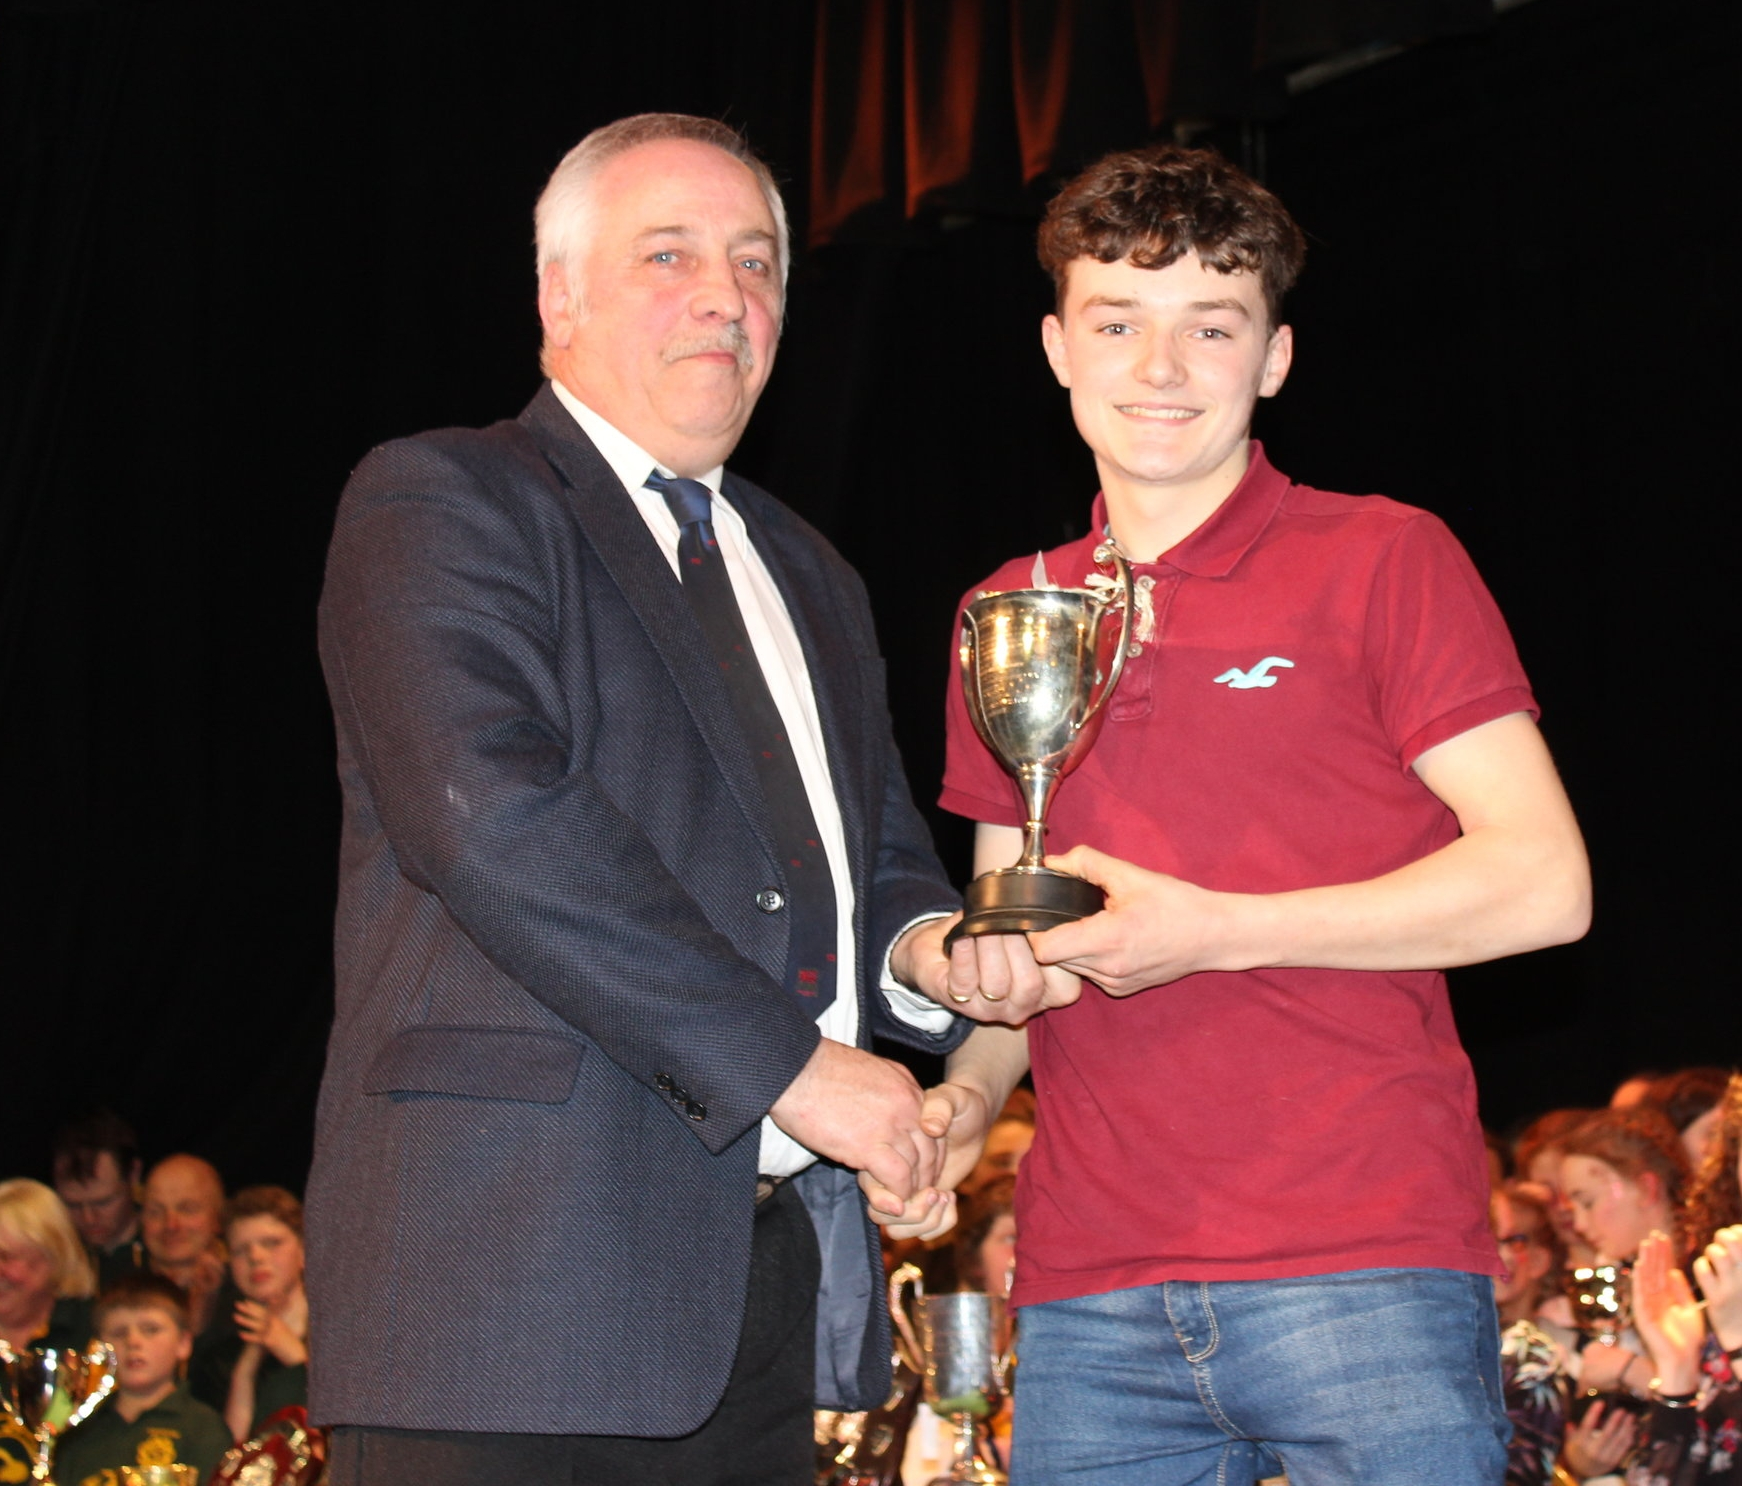 William Thomas, Cantal YFC winning the 'Watson Cup' for Best Musician by David Powell, FUW